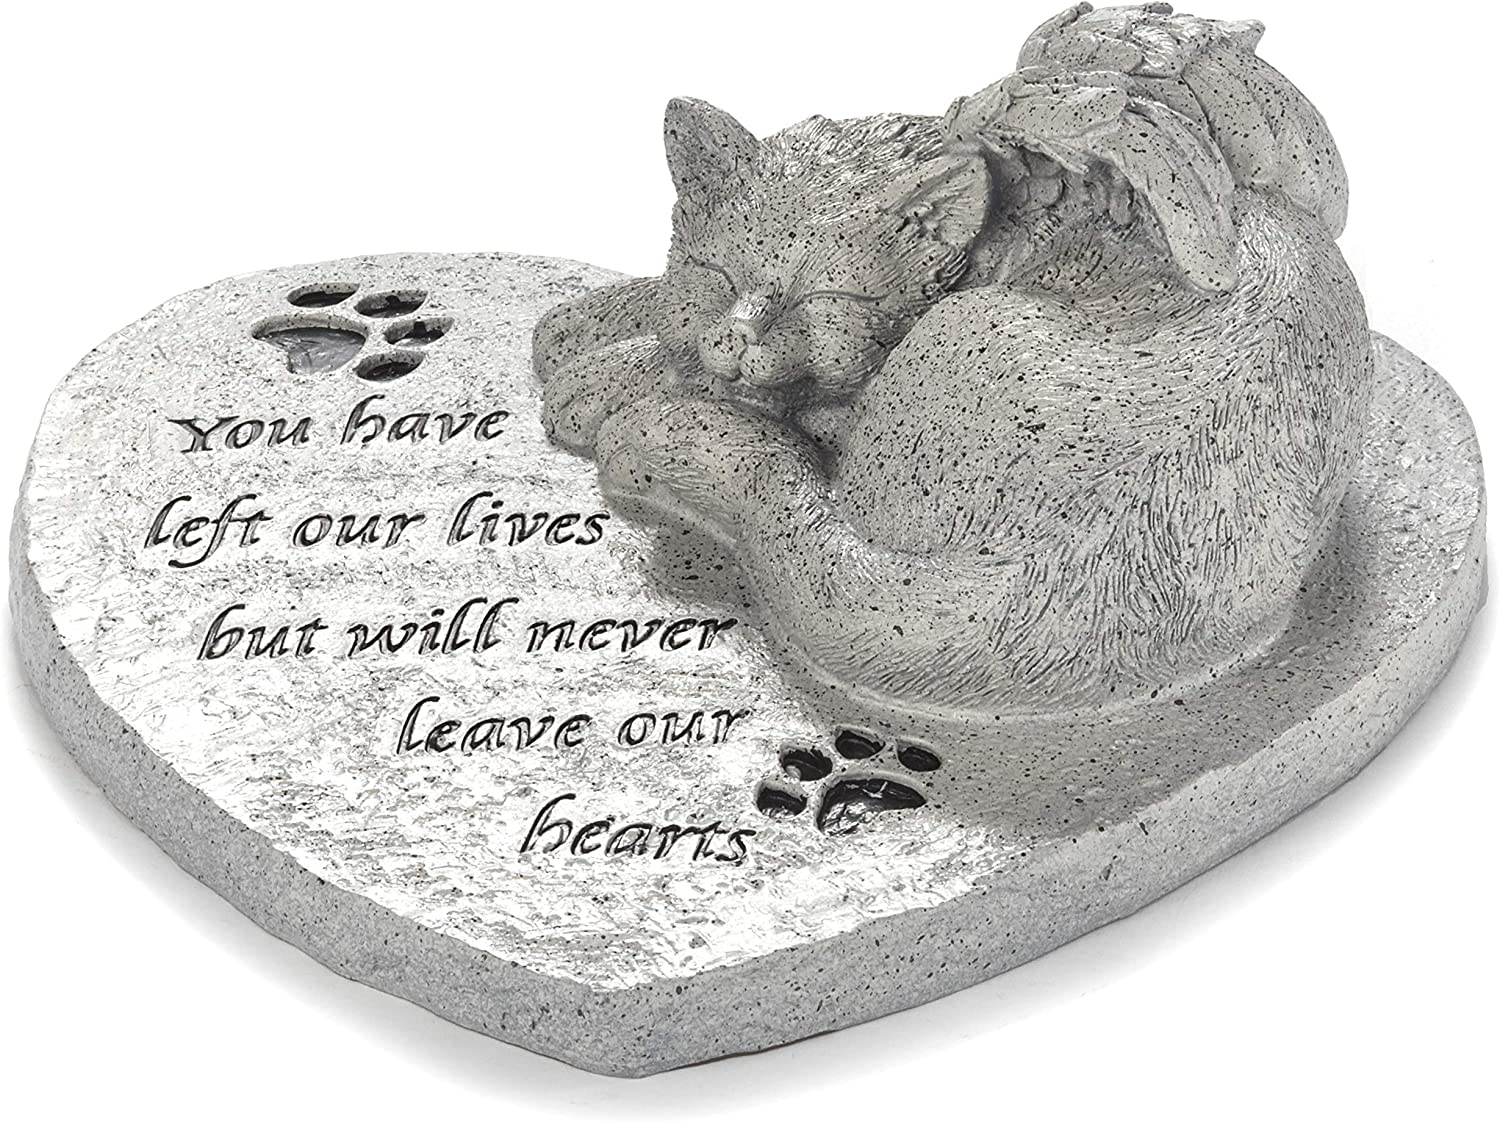 Pet Memorial Garden Stone for The Family Cat - Outdoor Remembrance Accent